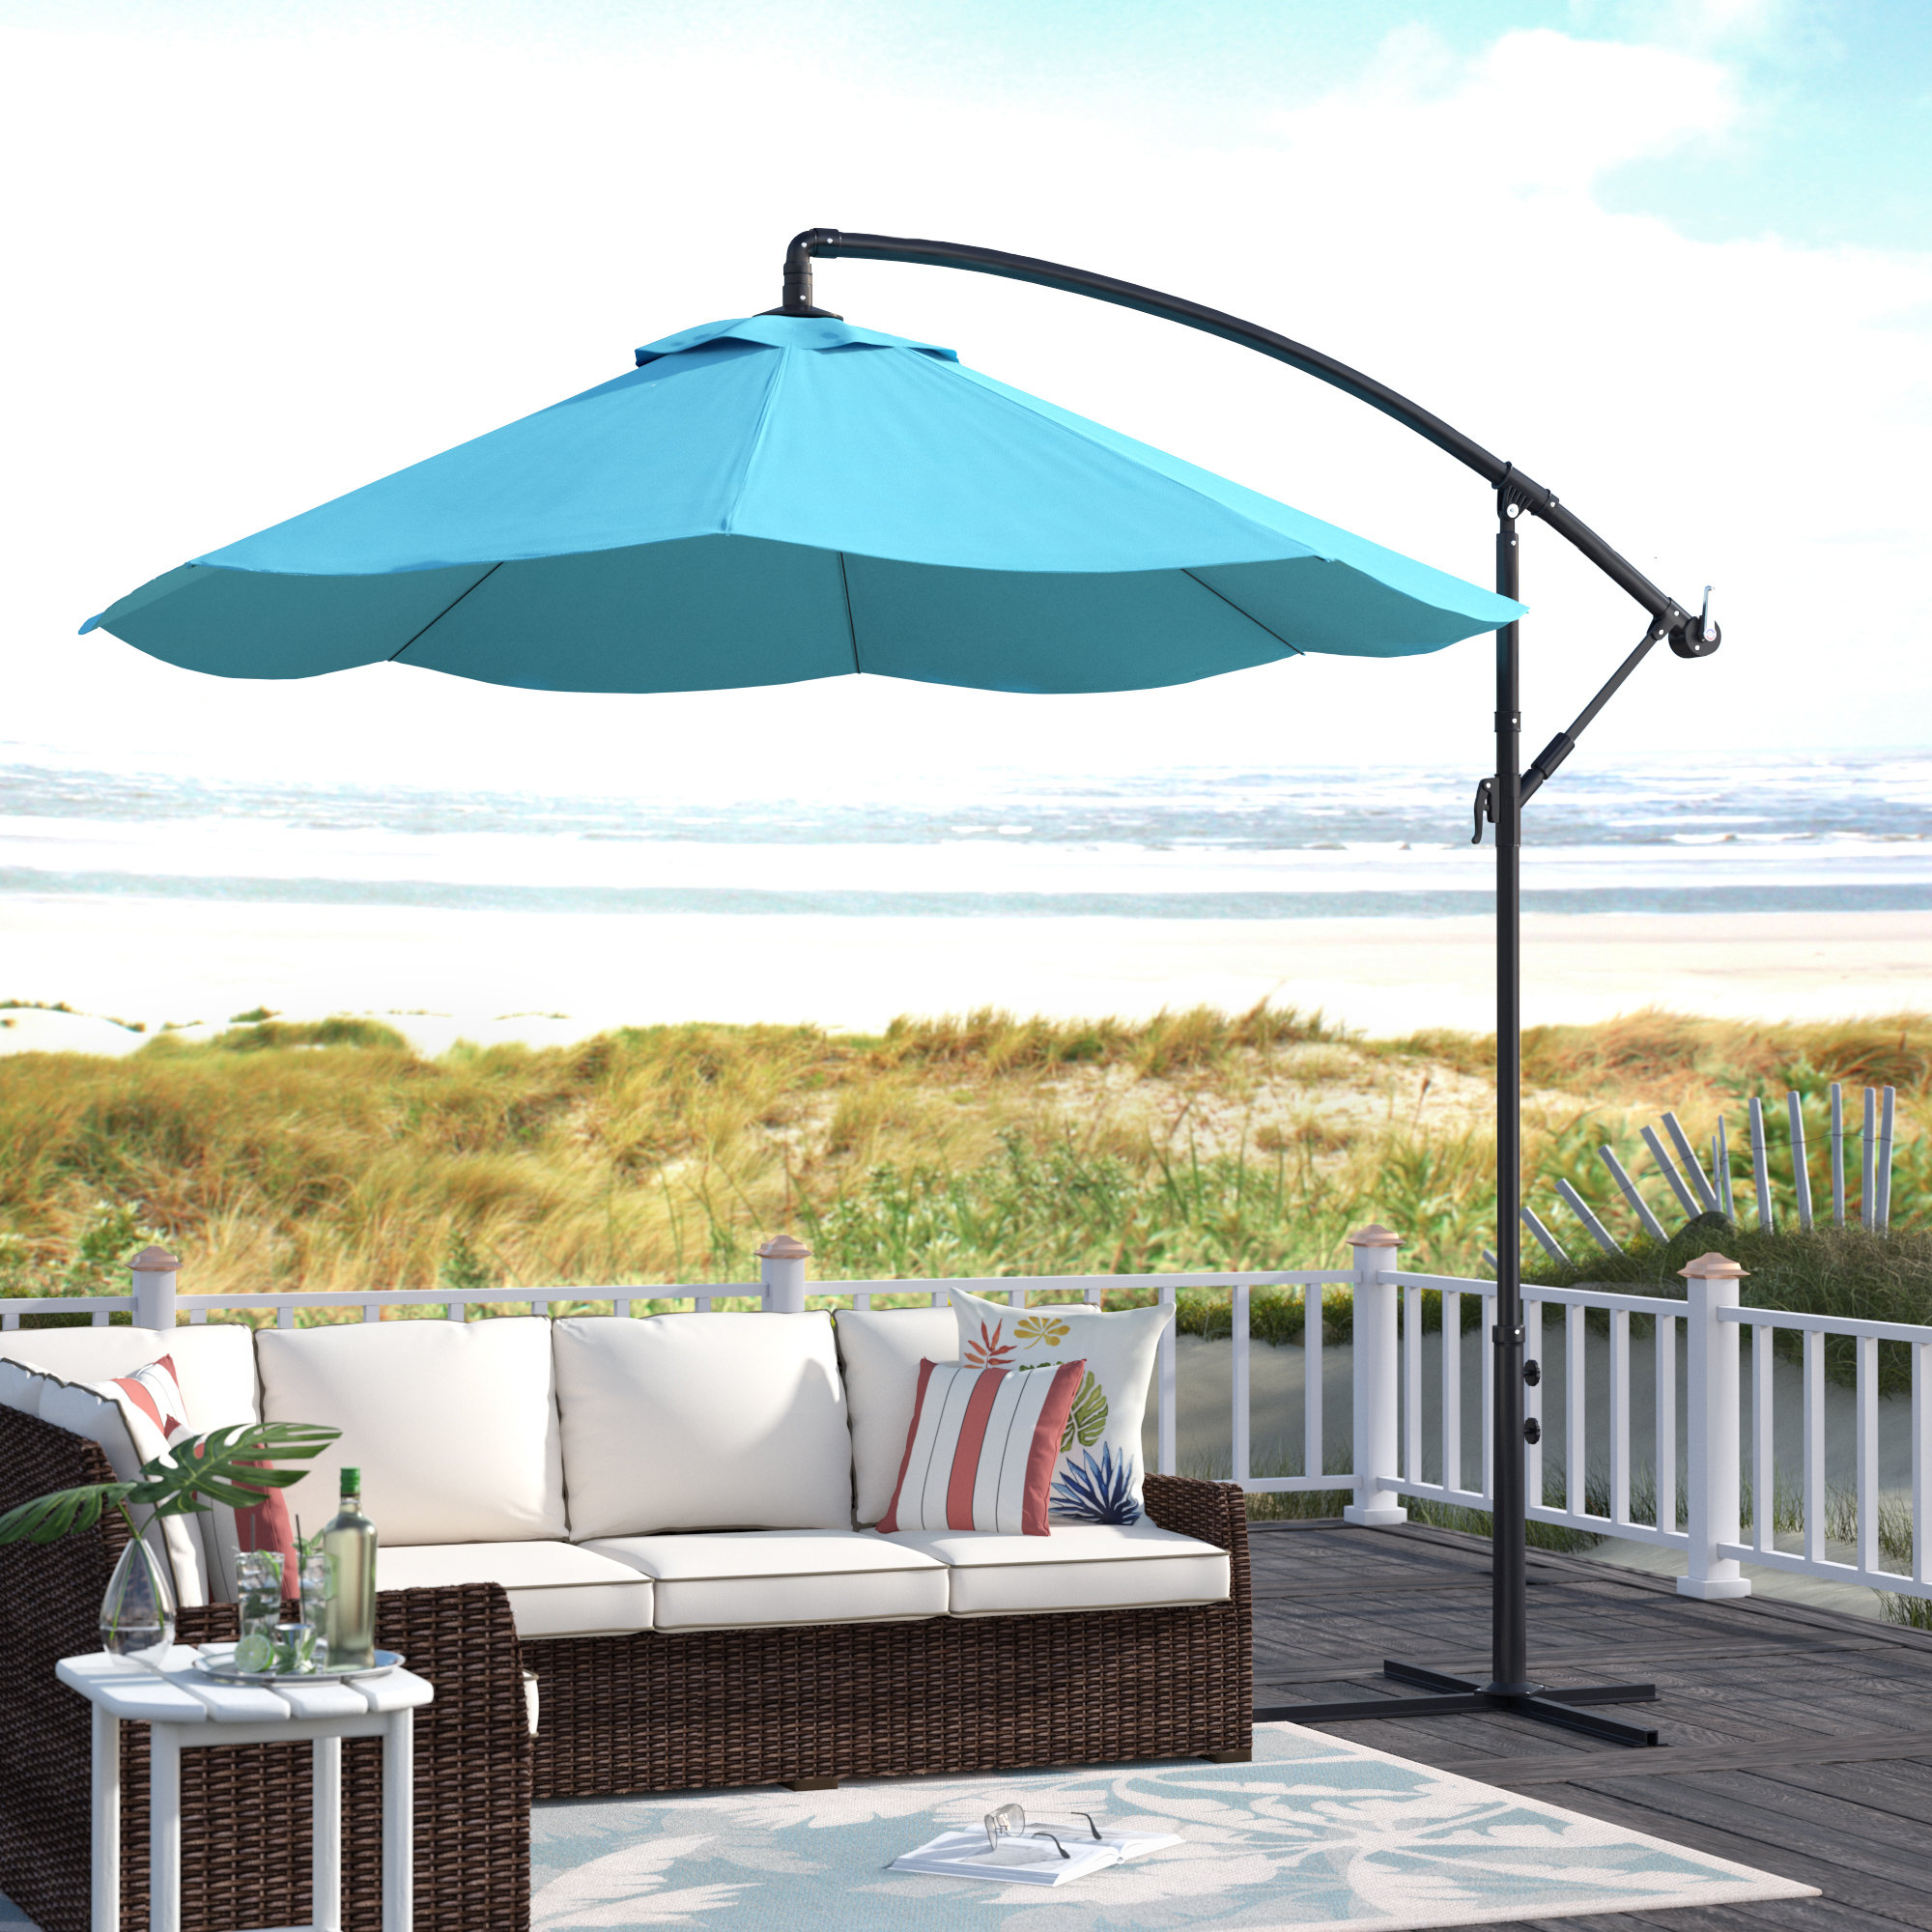 Most Current Vassalboro 10' Cantilever Umbrella Inside Bostic Cantilever Umbrellas (View 17 of 20)